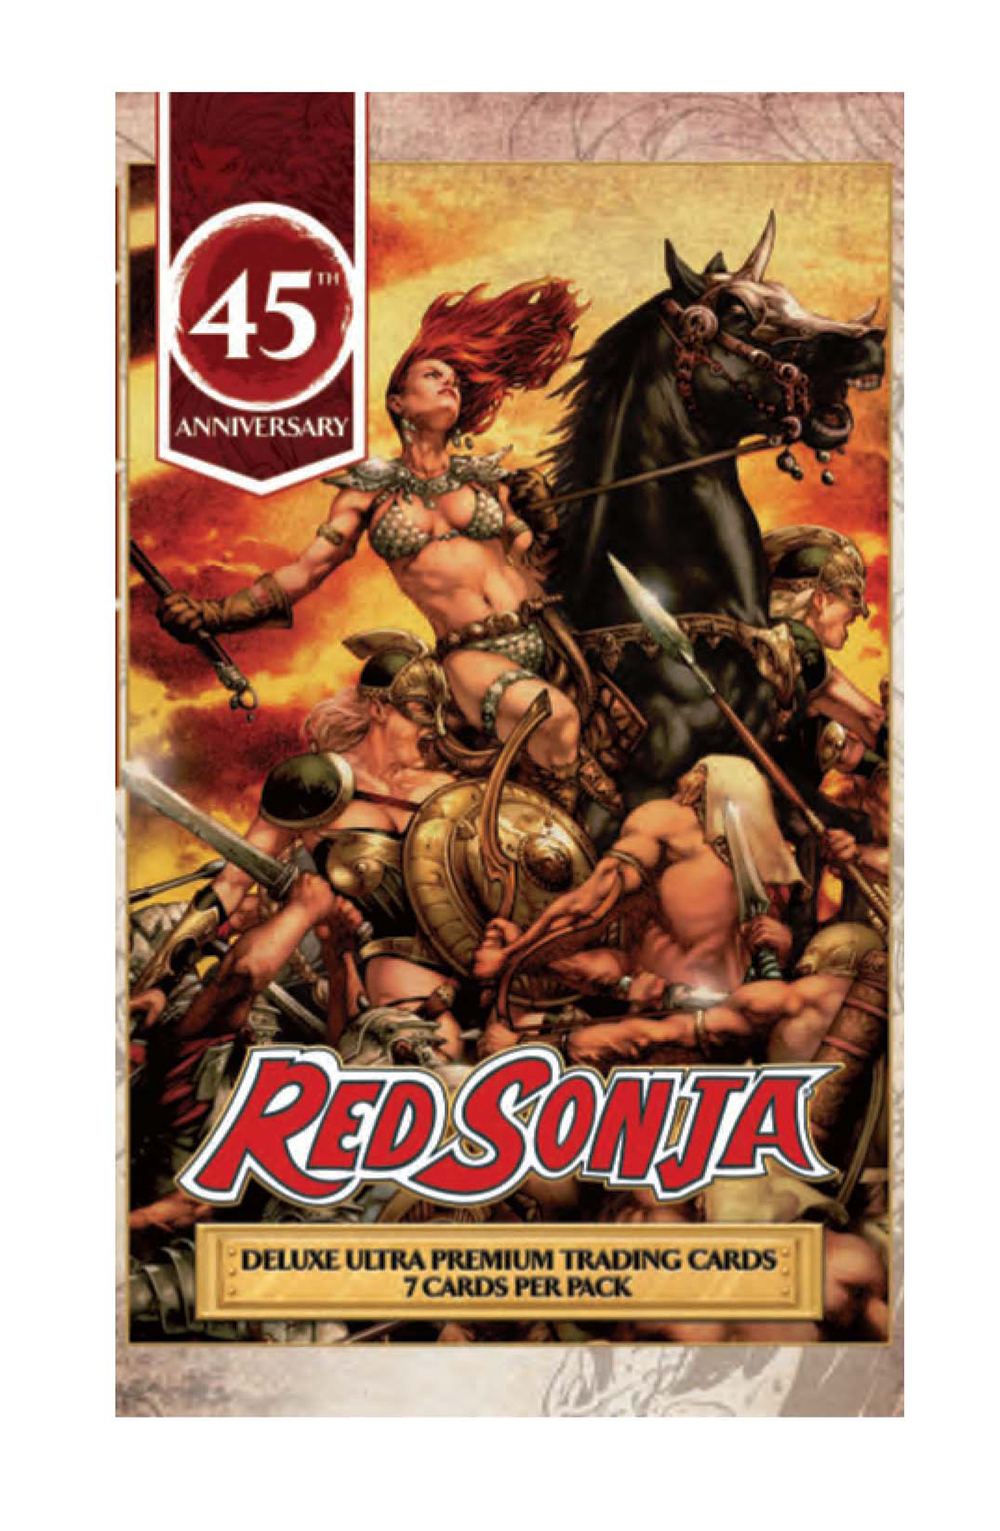 RED SONJA 45TH ANNIVERSARY FOIL TRADING CARD PACK  C: 0